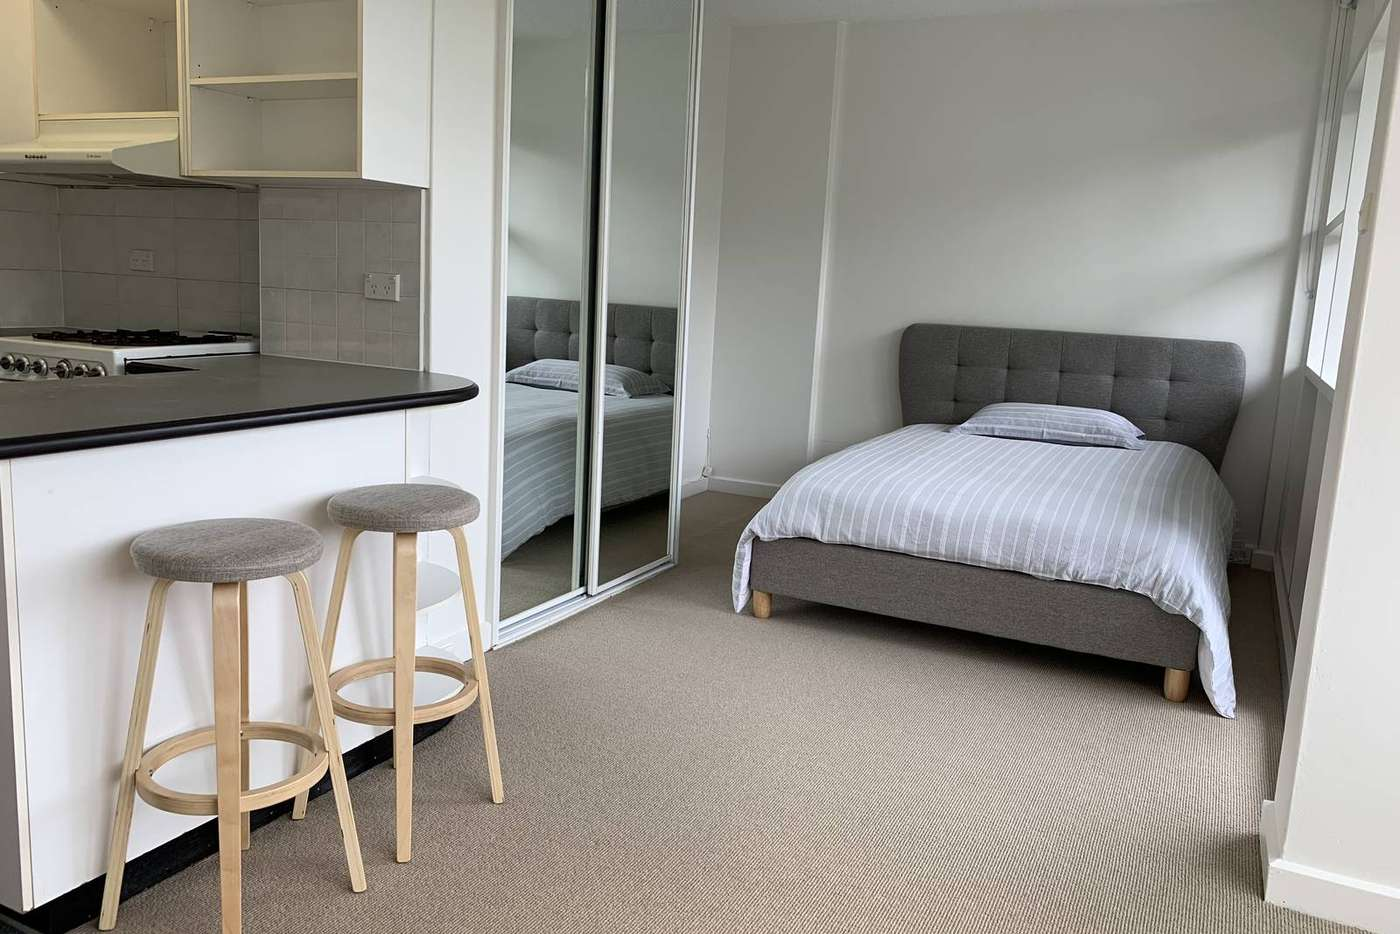 Main view of Homely studio listing, 207/54 High Street, North Sydney NSW 2060